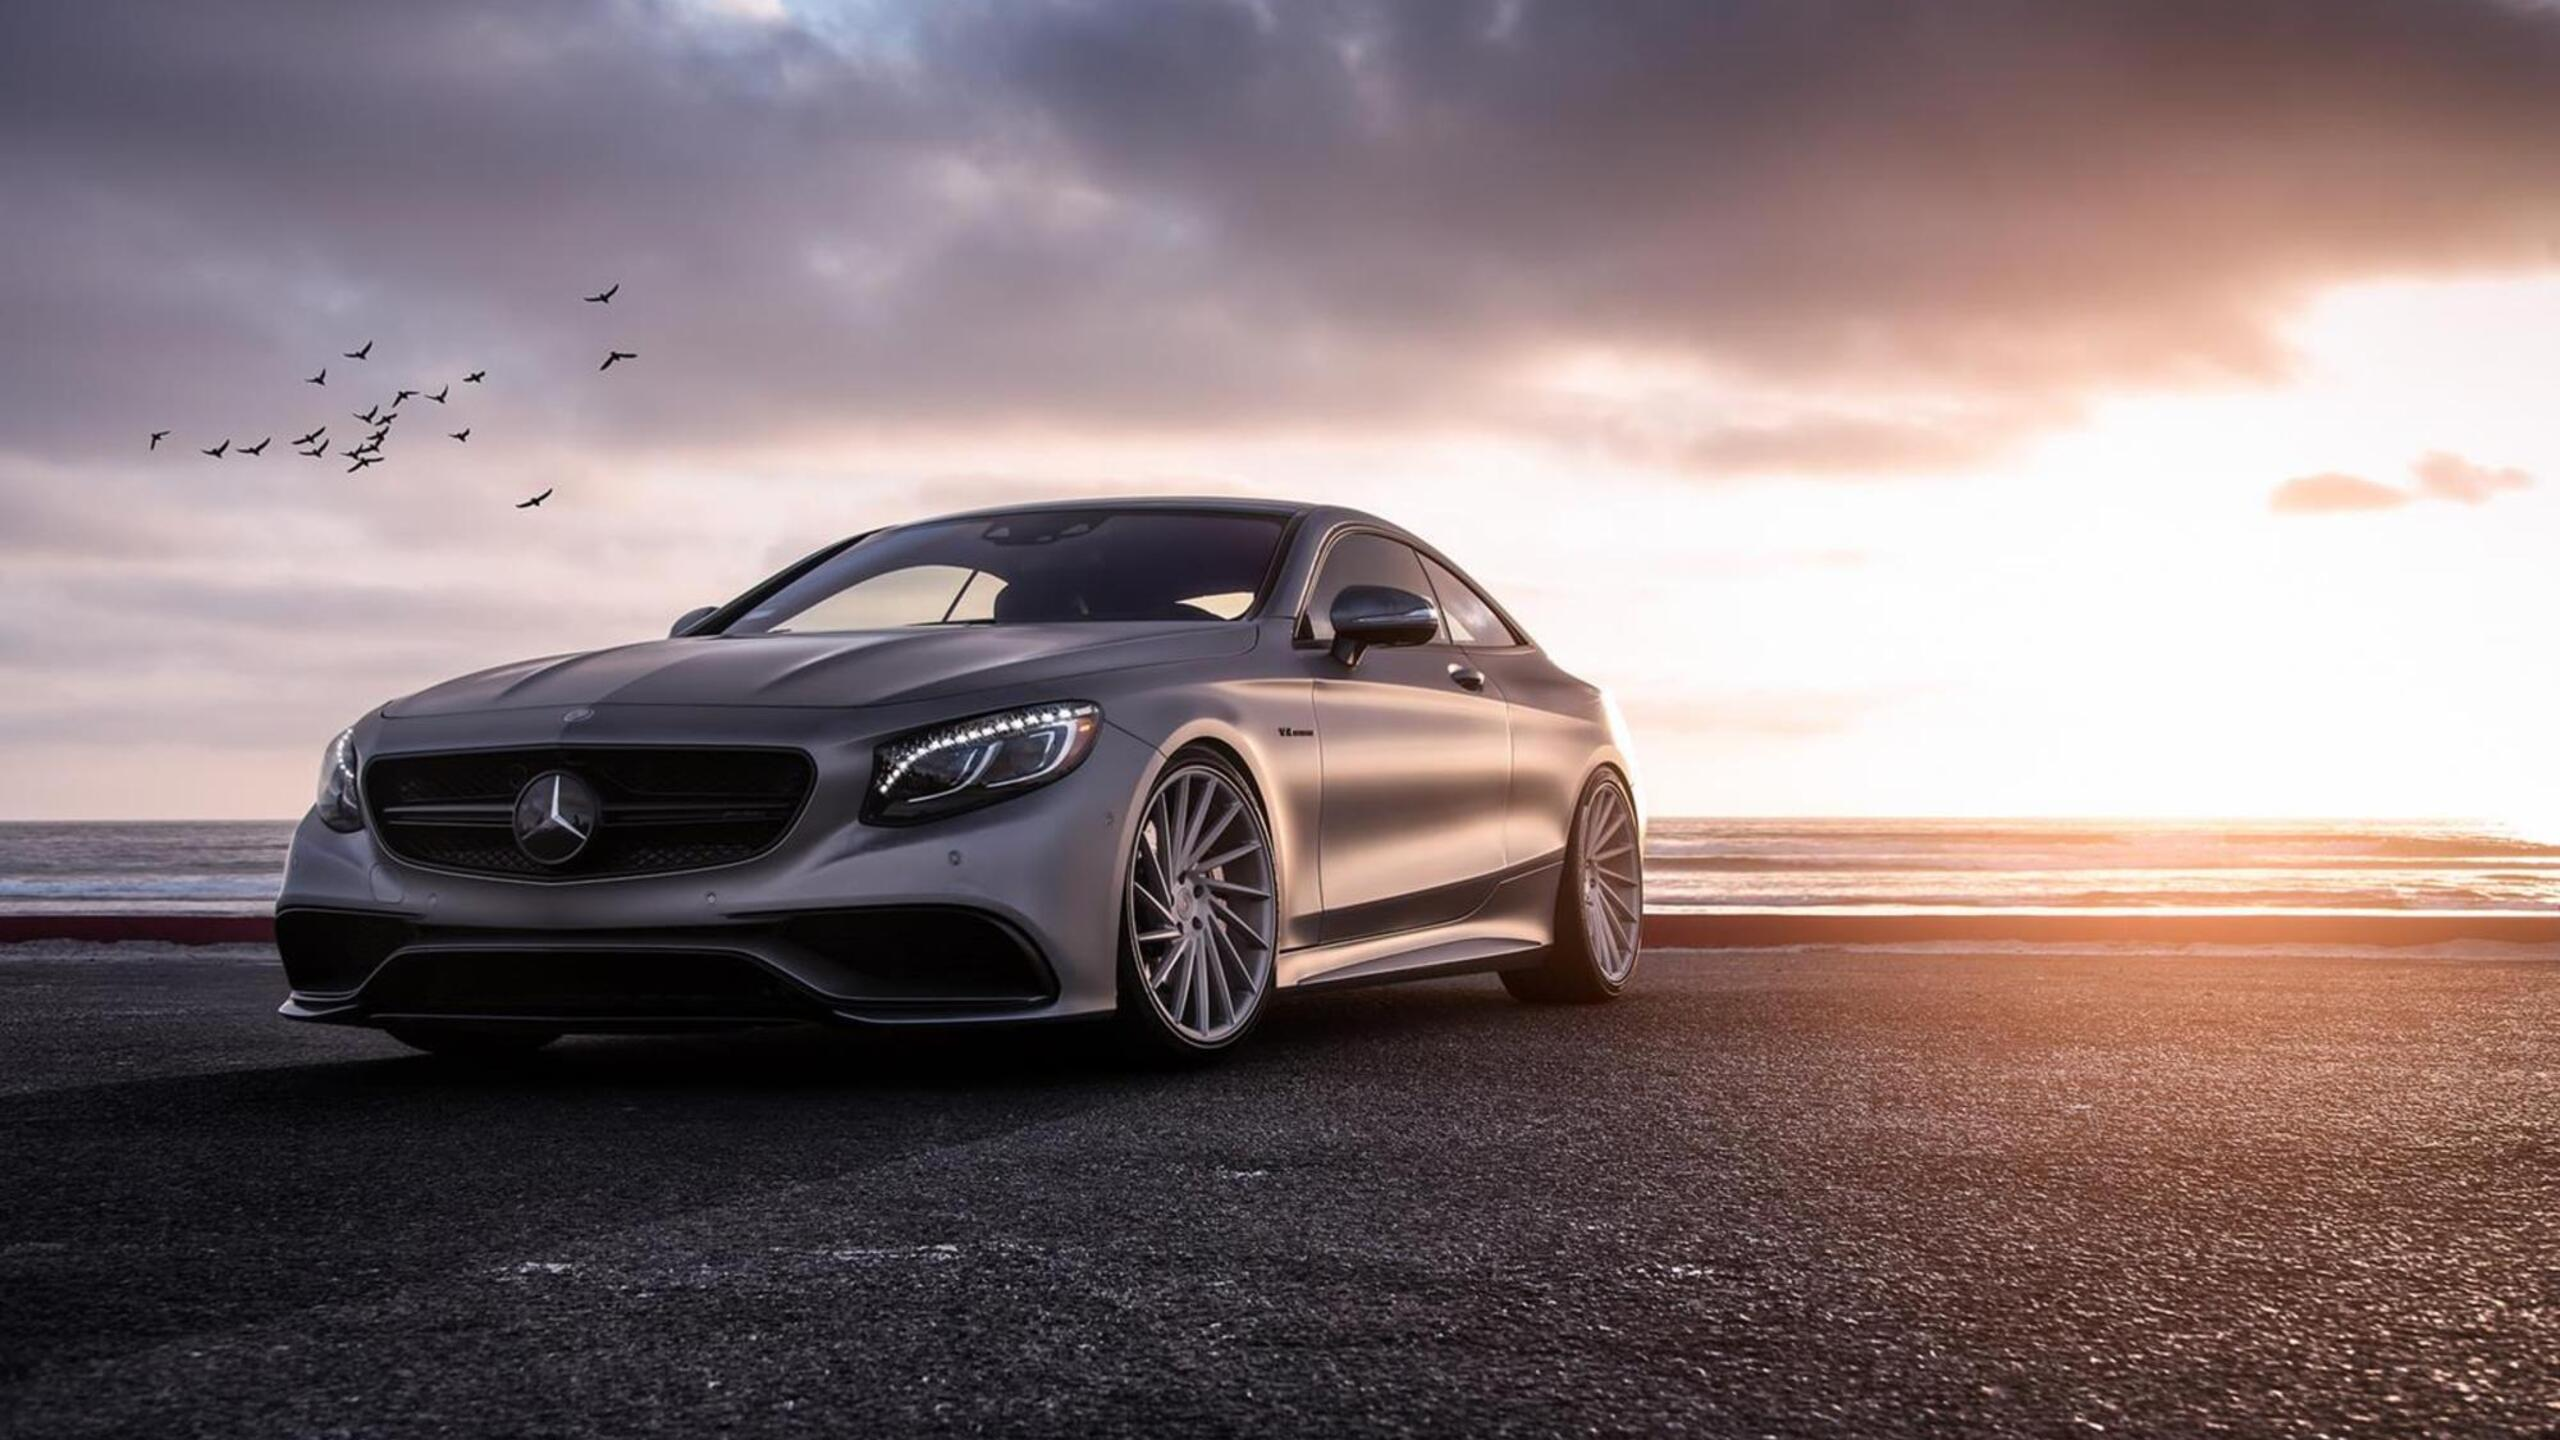 2560x1440 Mercedes Benz S Class Coupe 1440p Resolution Hd 4k